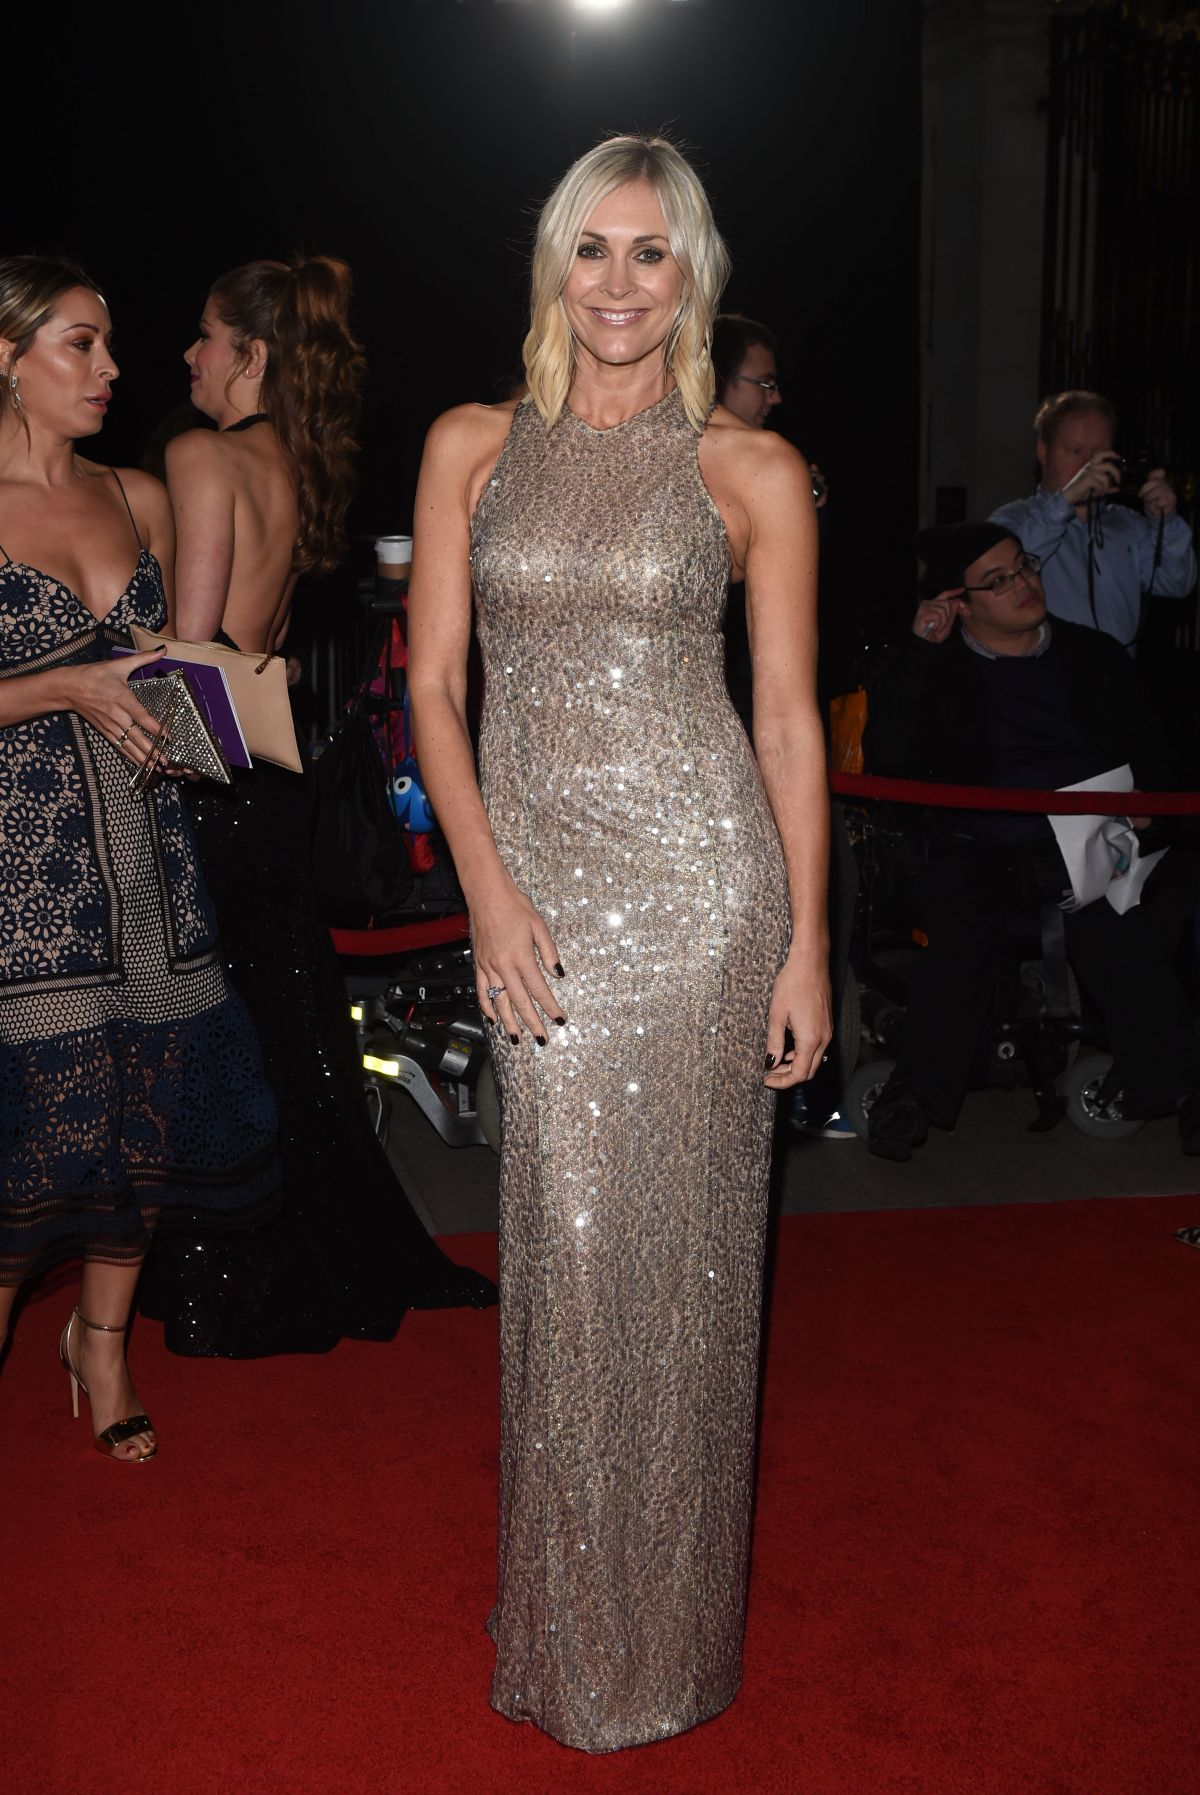 JENNI FALCONER at Pride of Britain Awards 2016 in London 10/31/2016